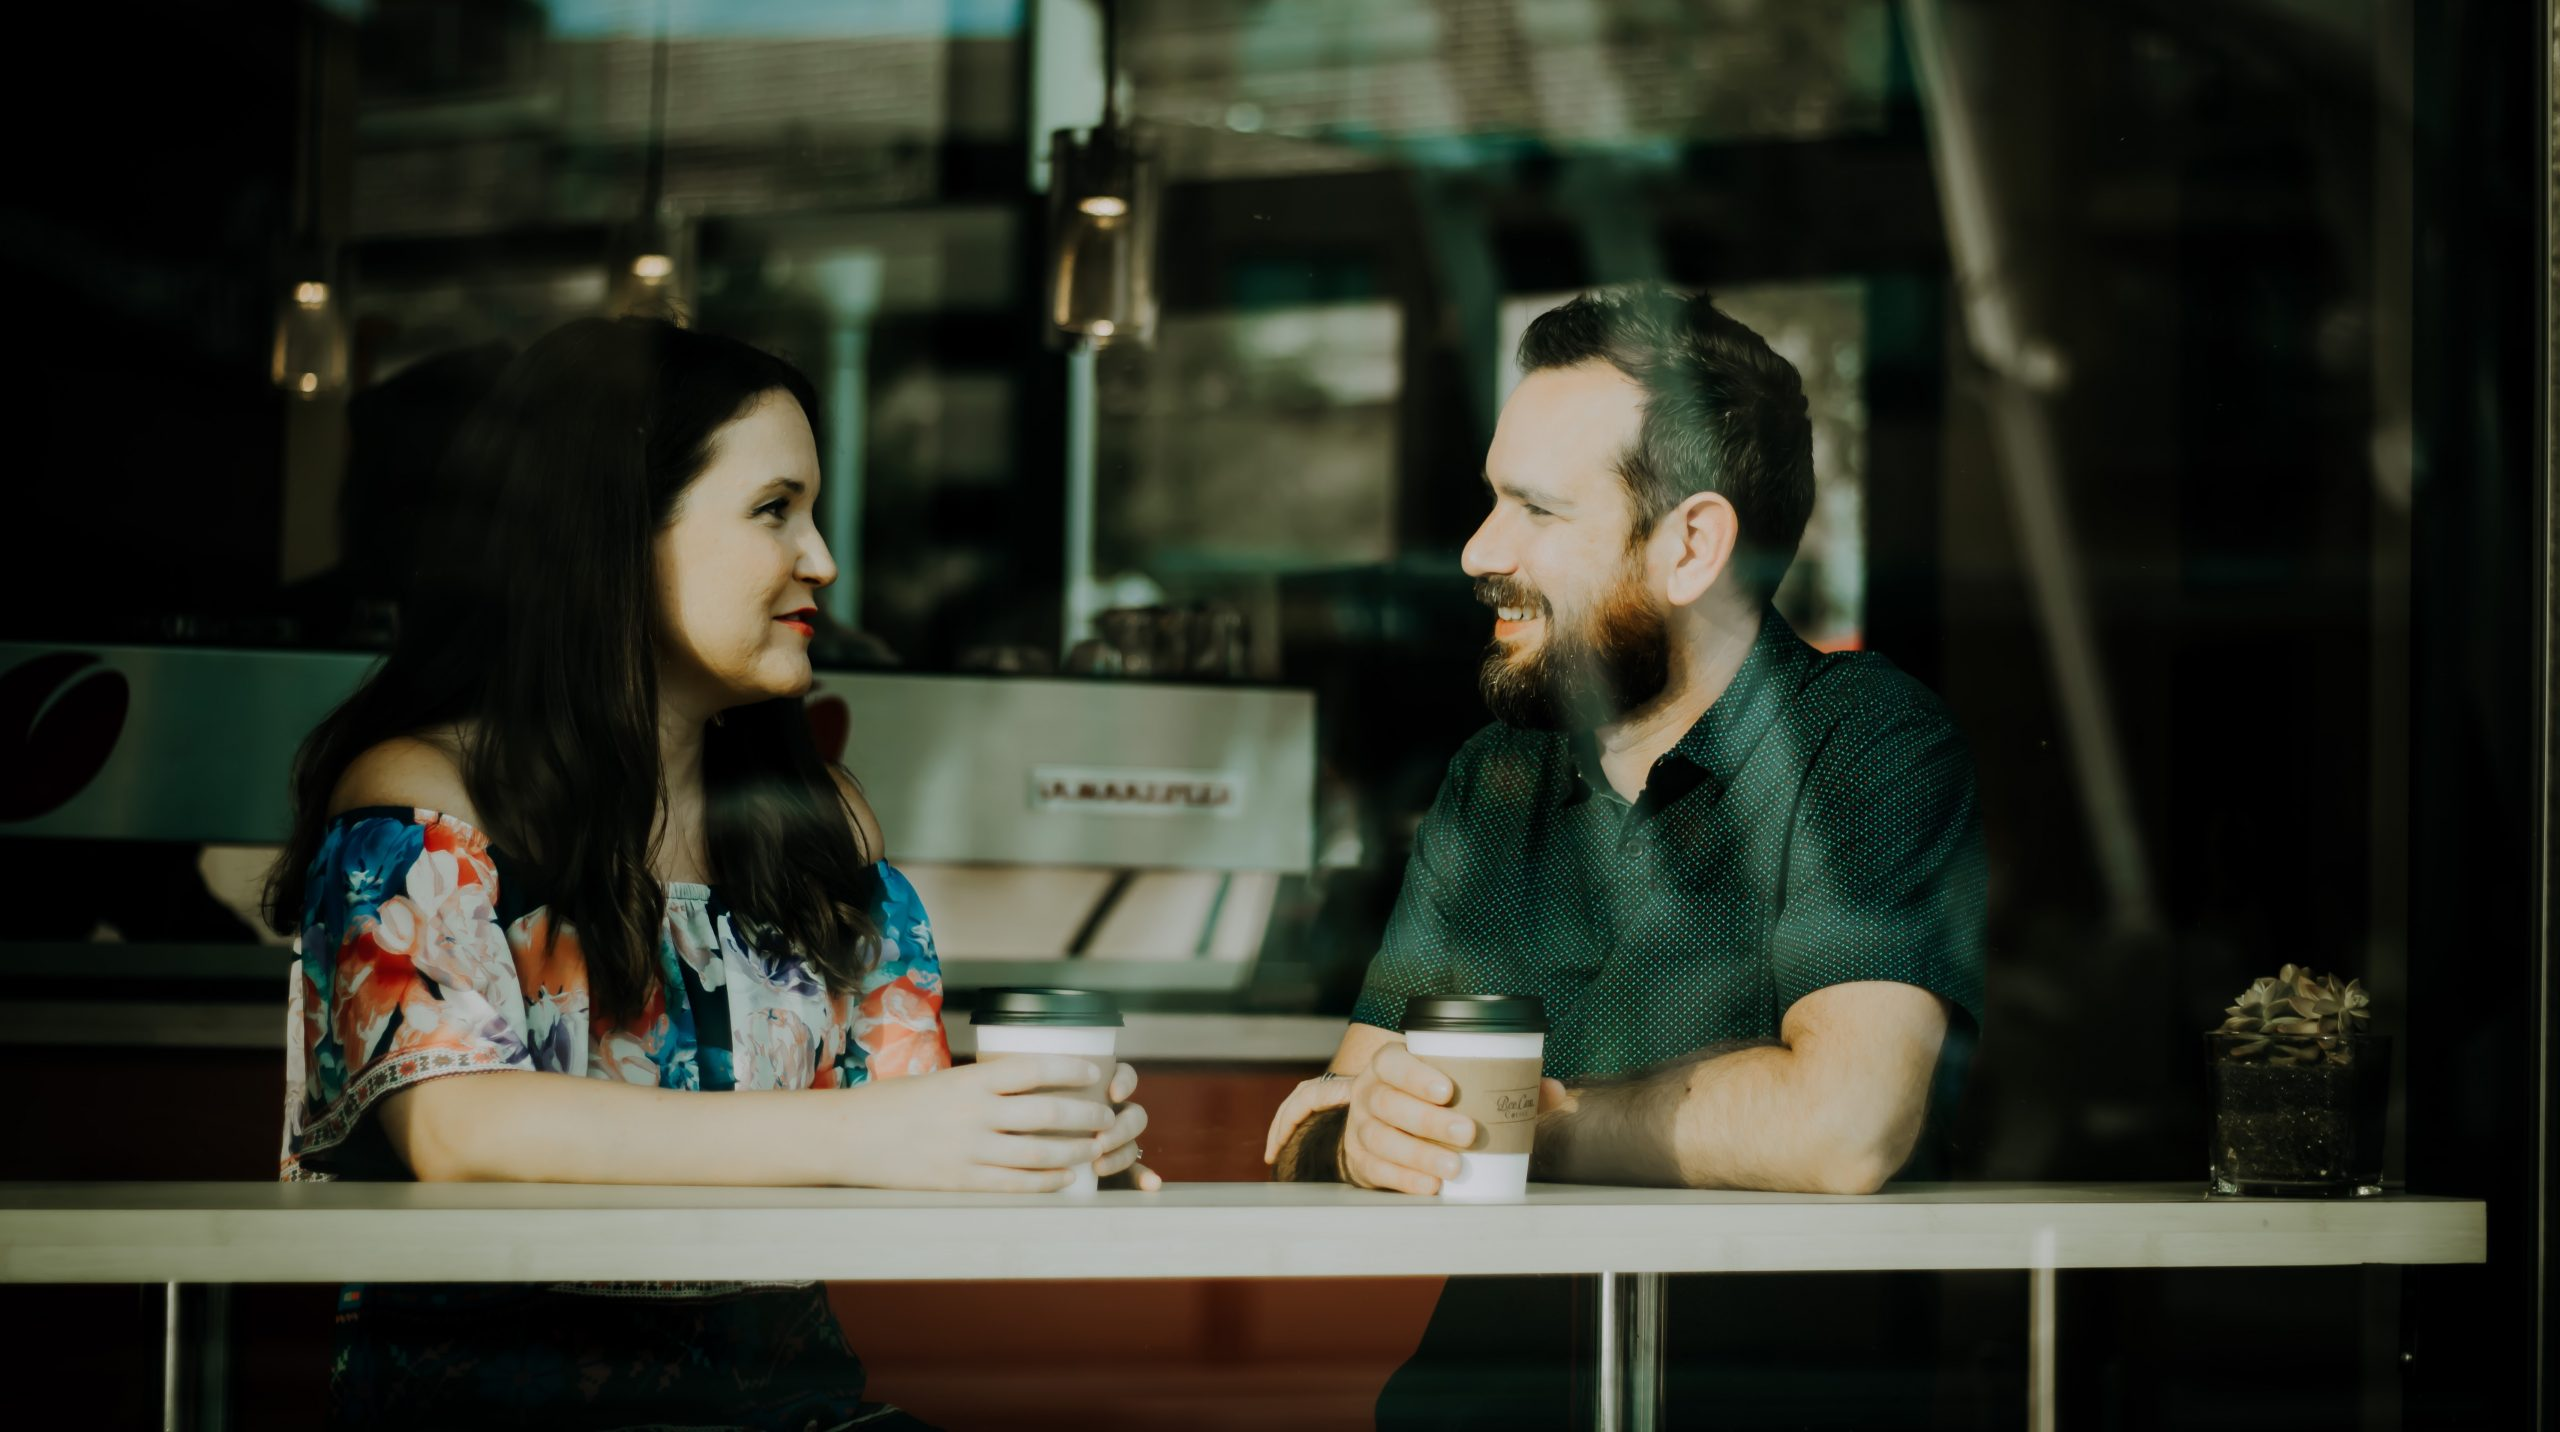 A couple smiling over a cup of coffee at a bench with a La Marzocco coffee machine in the background